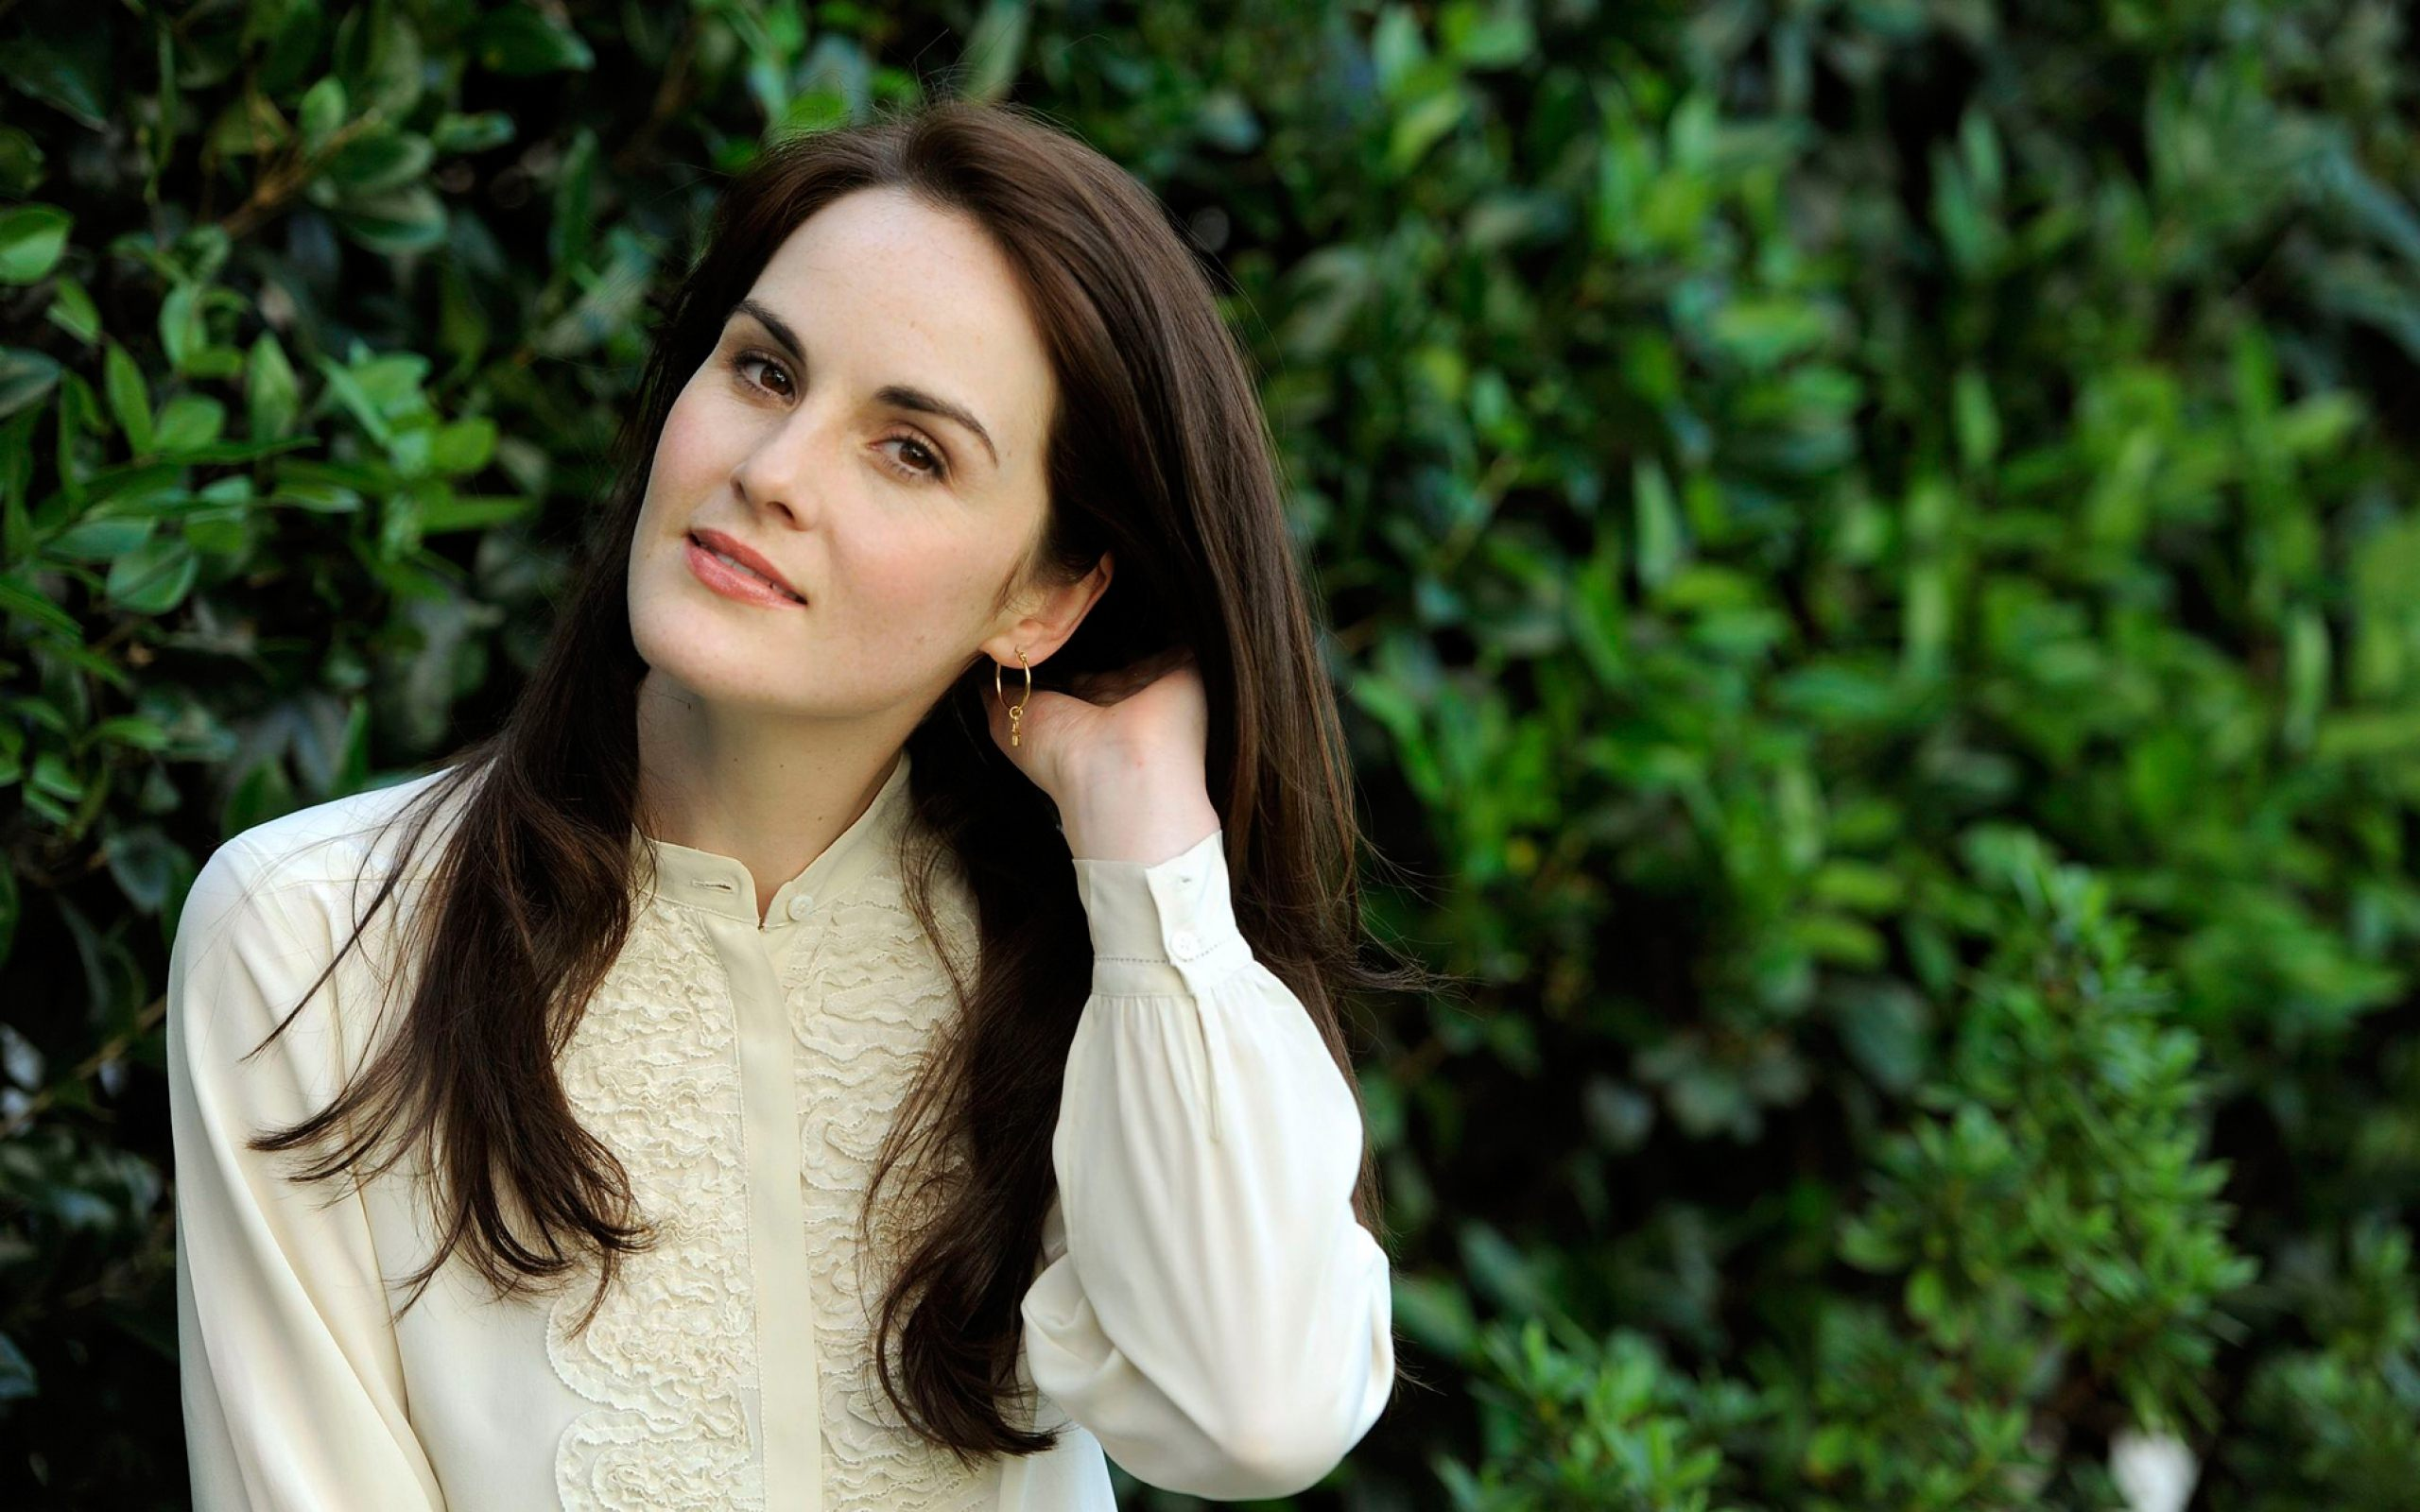 Michelle Dockery Wallpaper Background 57971 2560x1600px 2560x1600